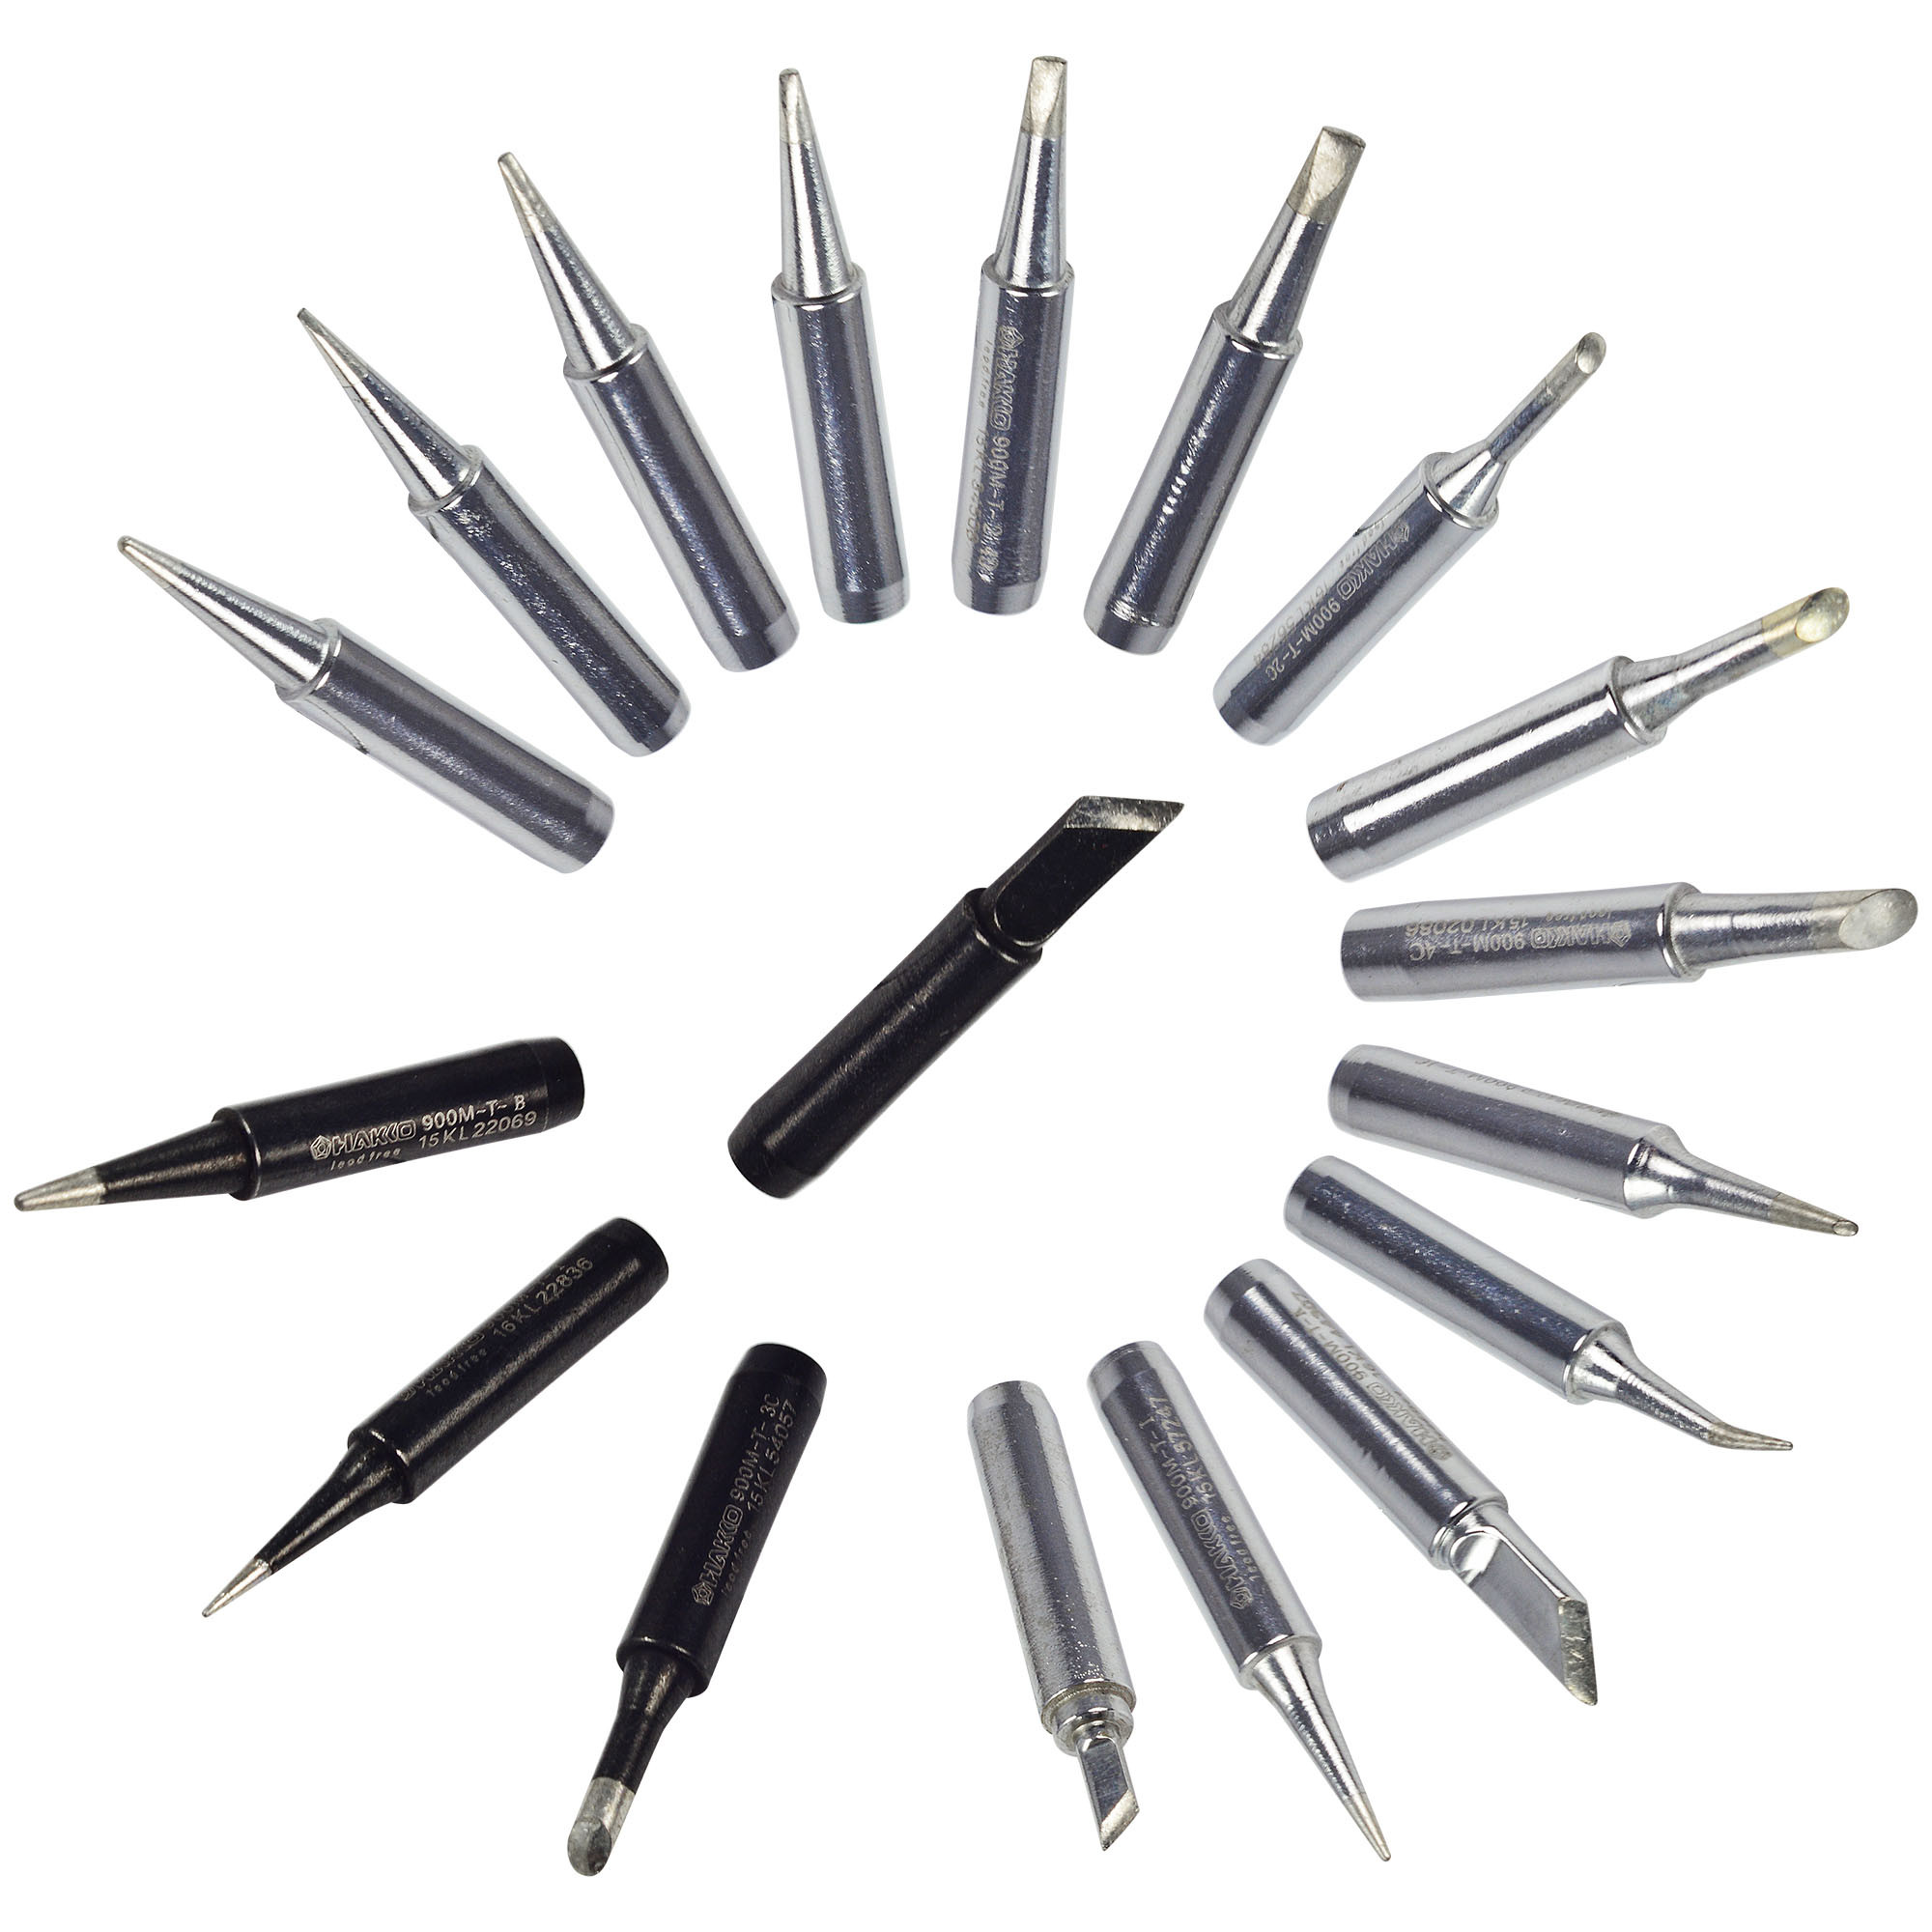 MENGS® 18pcs Solder iron Tip Lead-free Soldering Bit Replace Tips for 936 Soldering Rework Station BGA Tool Accessory